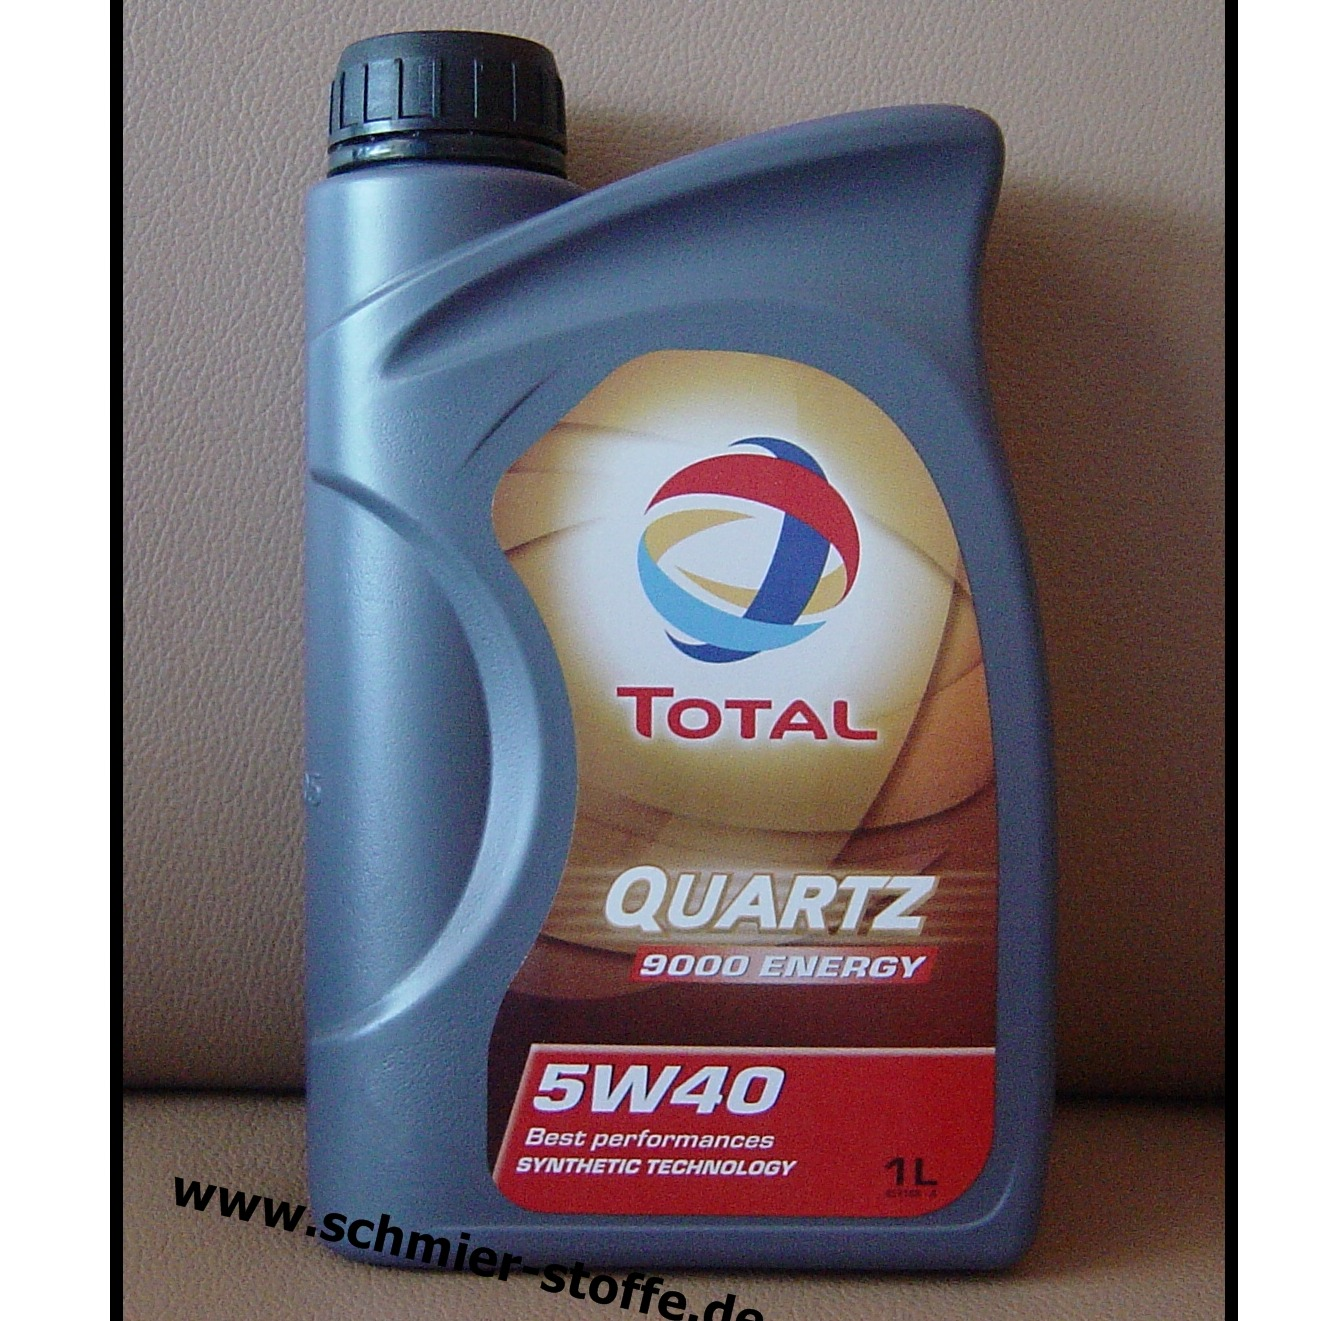 Total Quartz 9000 Energy 1l